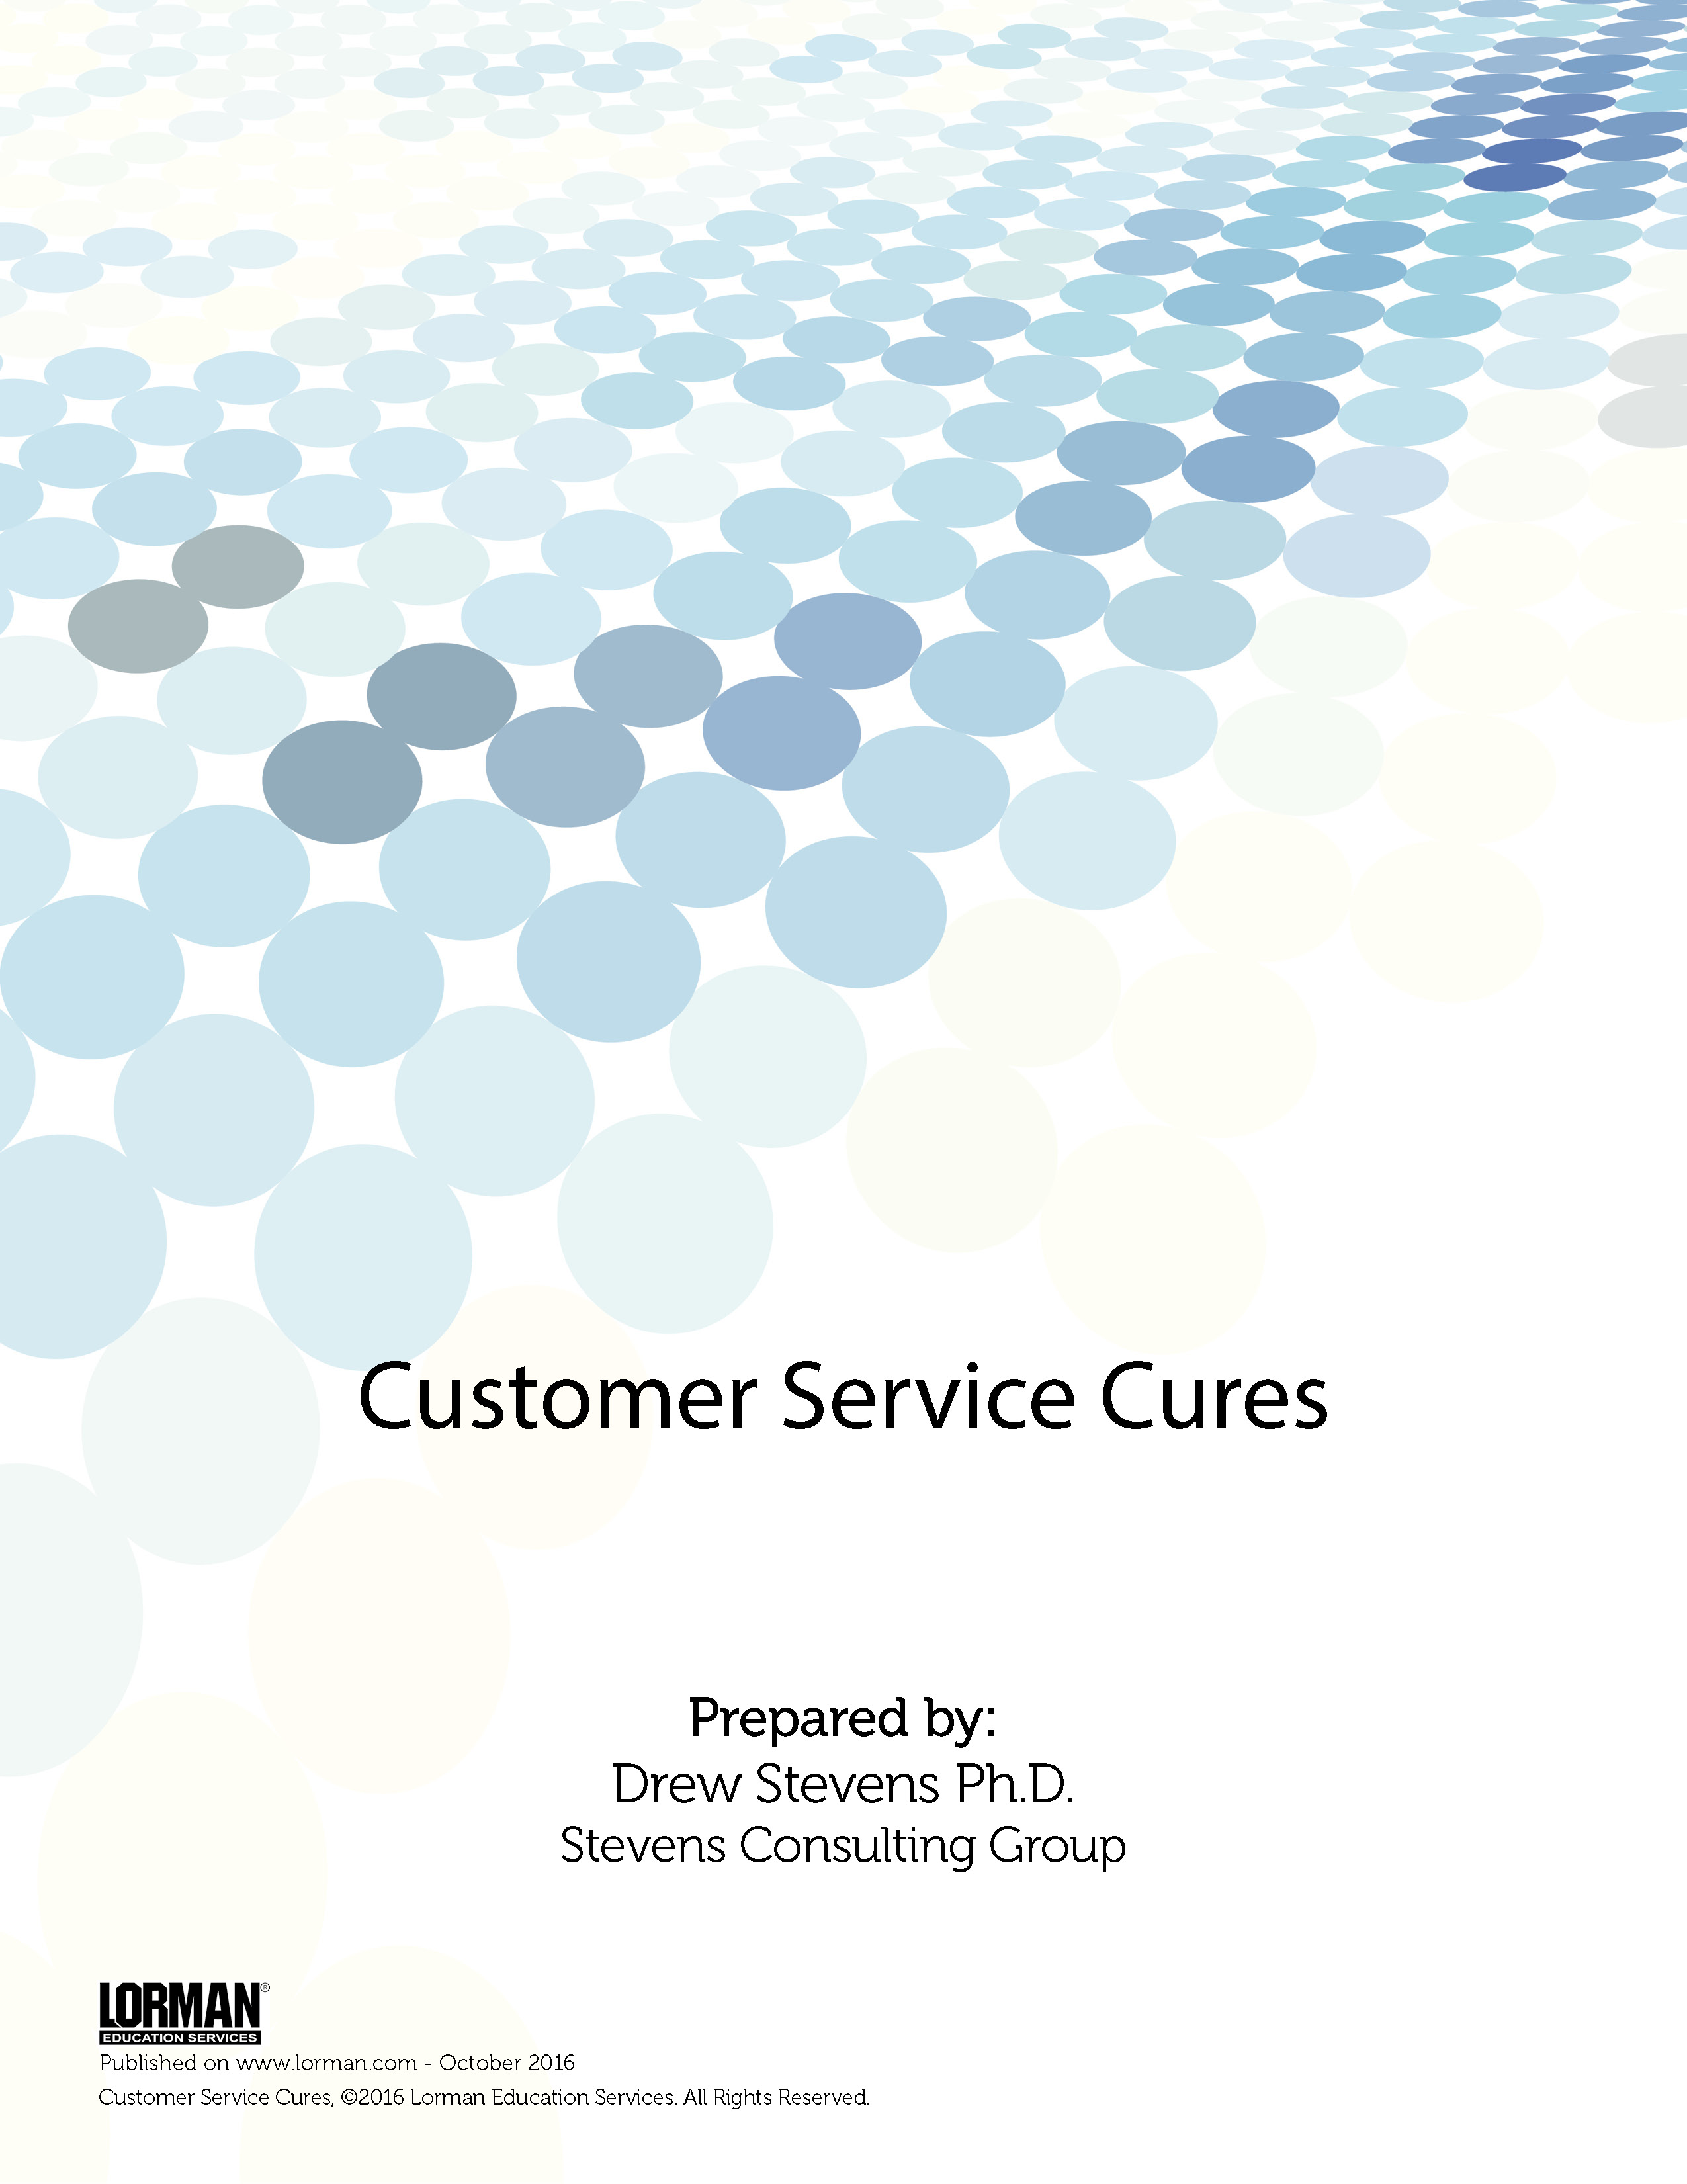 Customer Service Cures